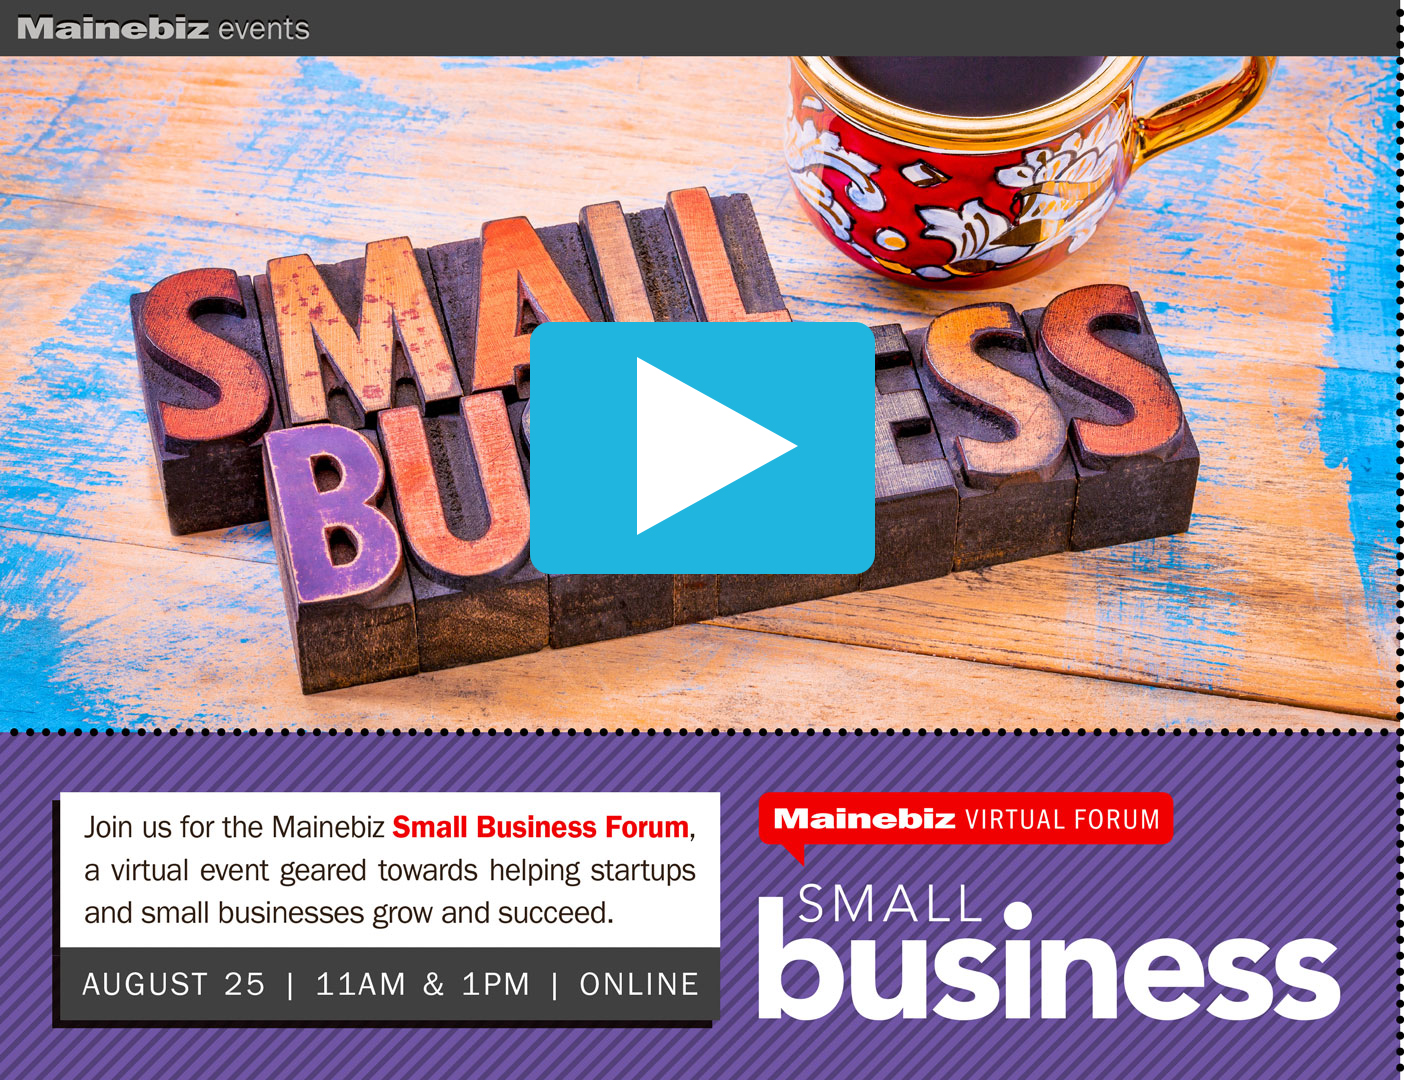 2021 Small Business Forum hosted by Mainebiz